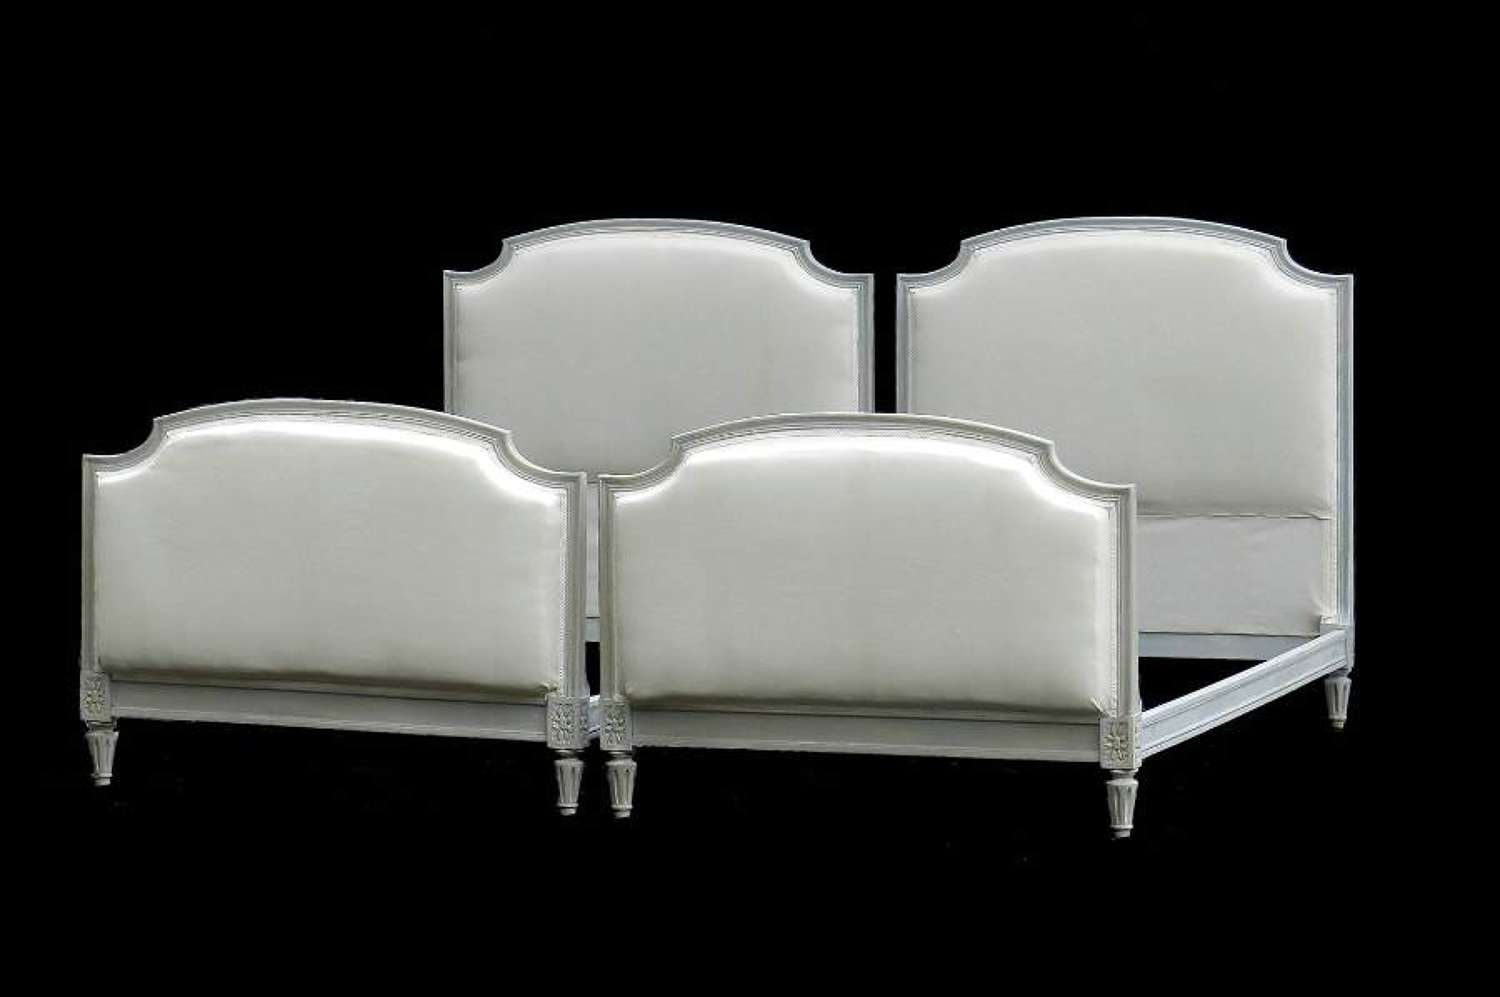 Pair of French Single Beds + Bases